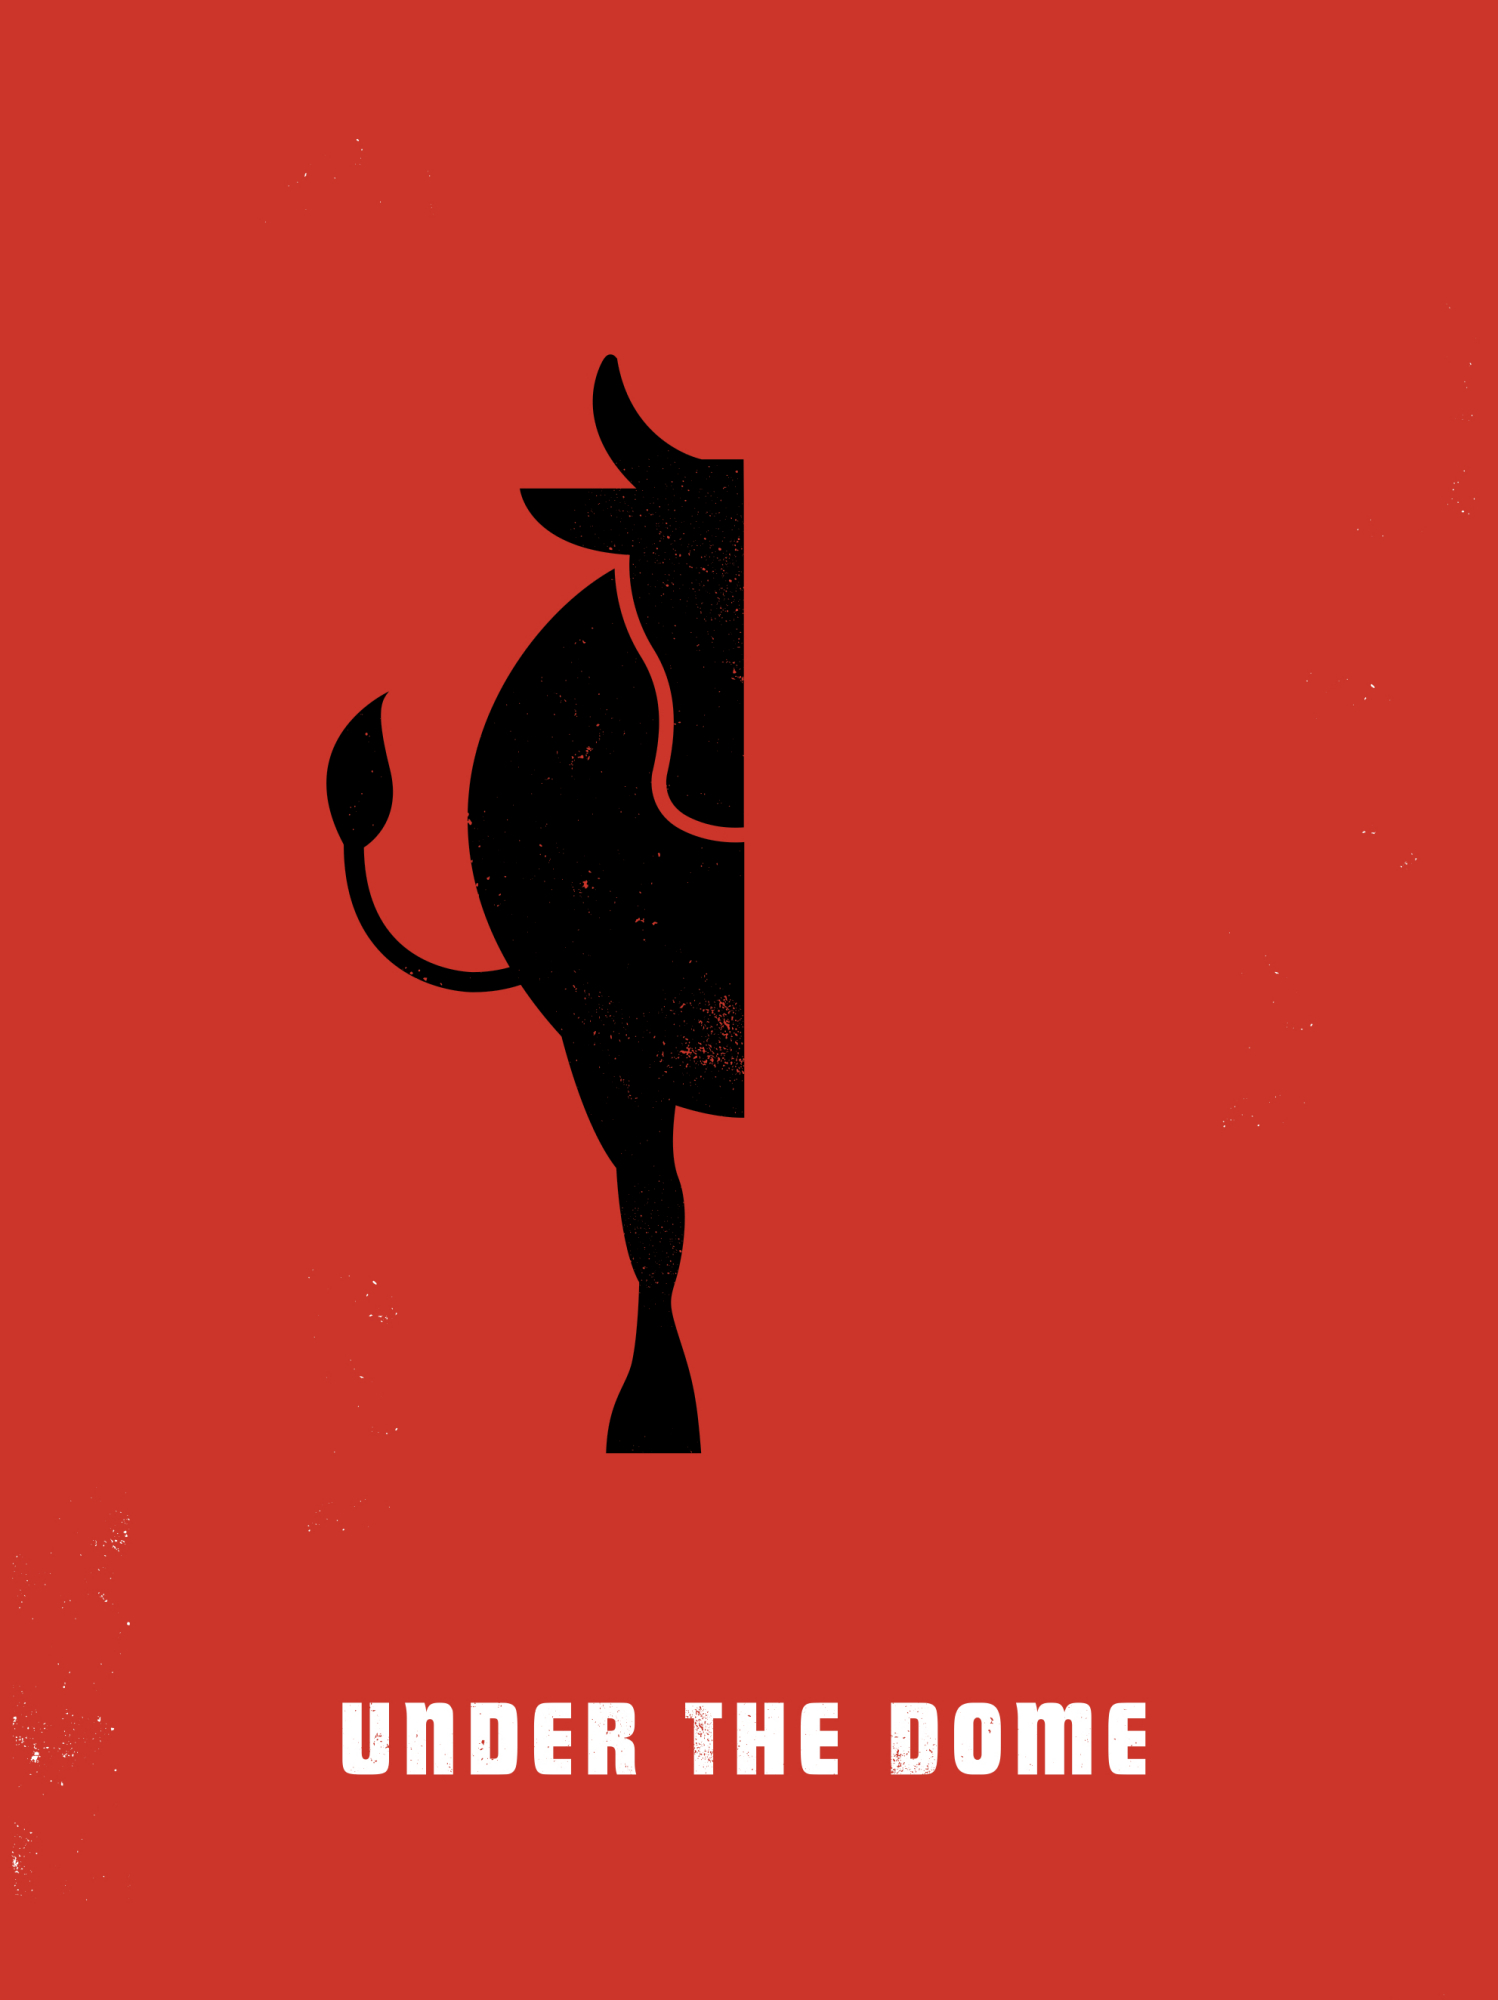 Udderly Cool: CBS Unveils 'Under the Dome' Art for Comic-Con 2013